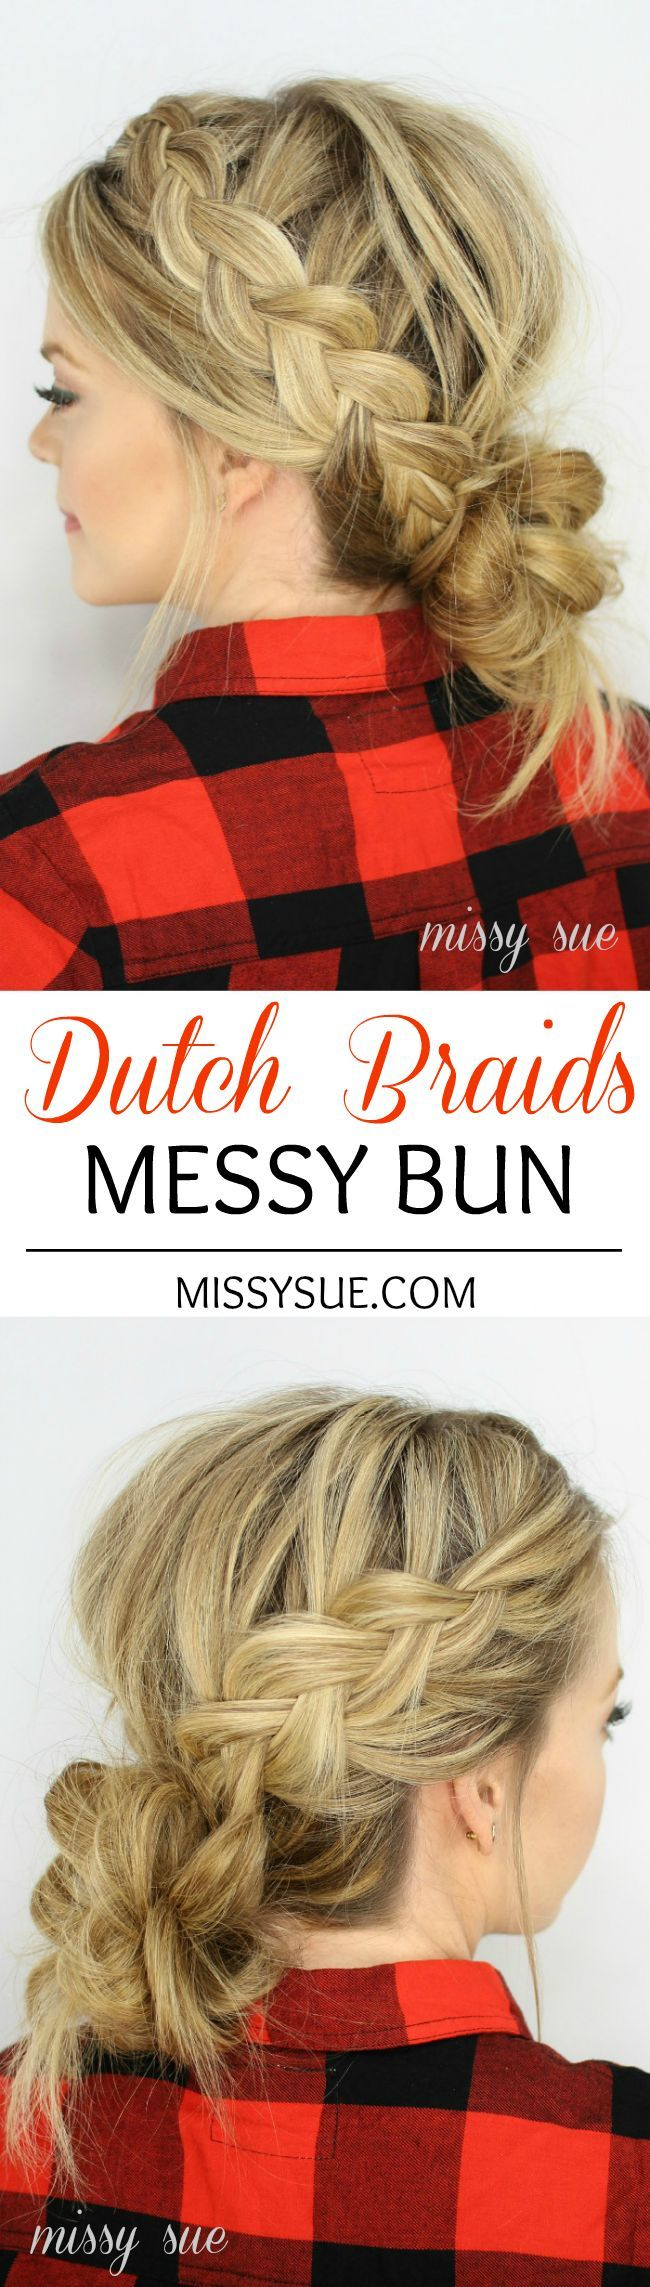 25+ best Braided messy buns ideas on Pinterest